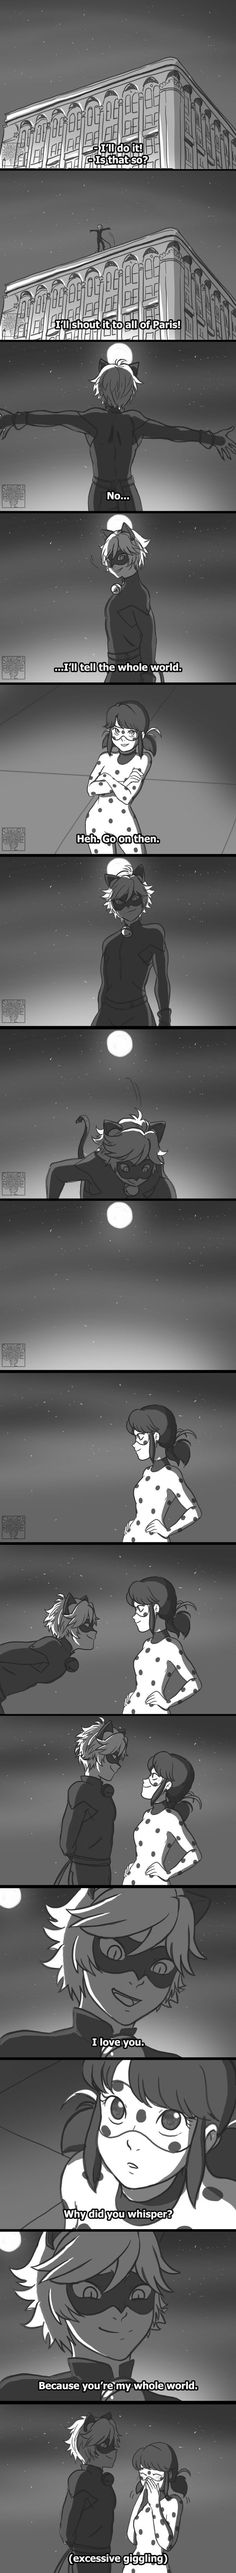 (Miraculous: Tales of Ladybug and Chat Noir) Chat Noir/Ladybug Ladybug E Catnoir, Comics Ladybug, Ladybug Und Cat Noir, Lady Bug, Les Miraculous, Photo Manga, Catty Noir, Adrien Agreste, When Things Go Wrong